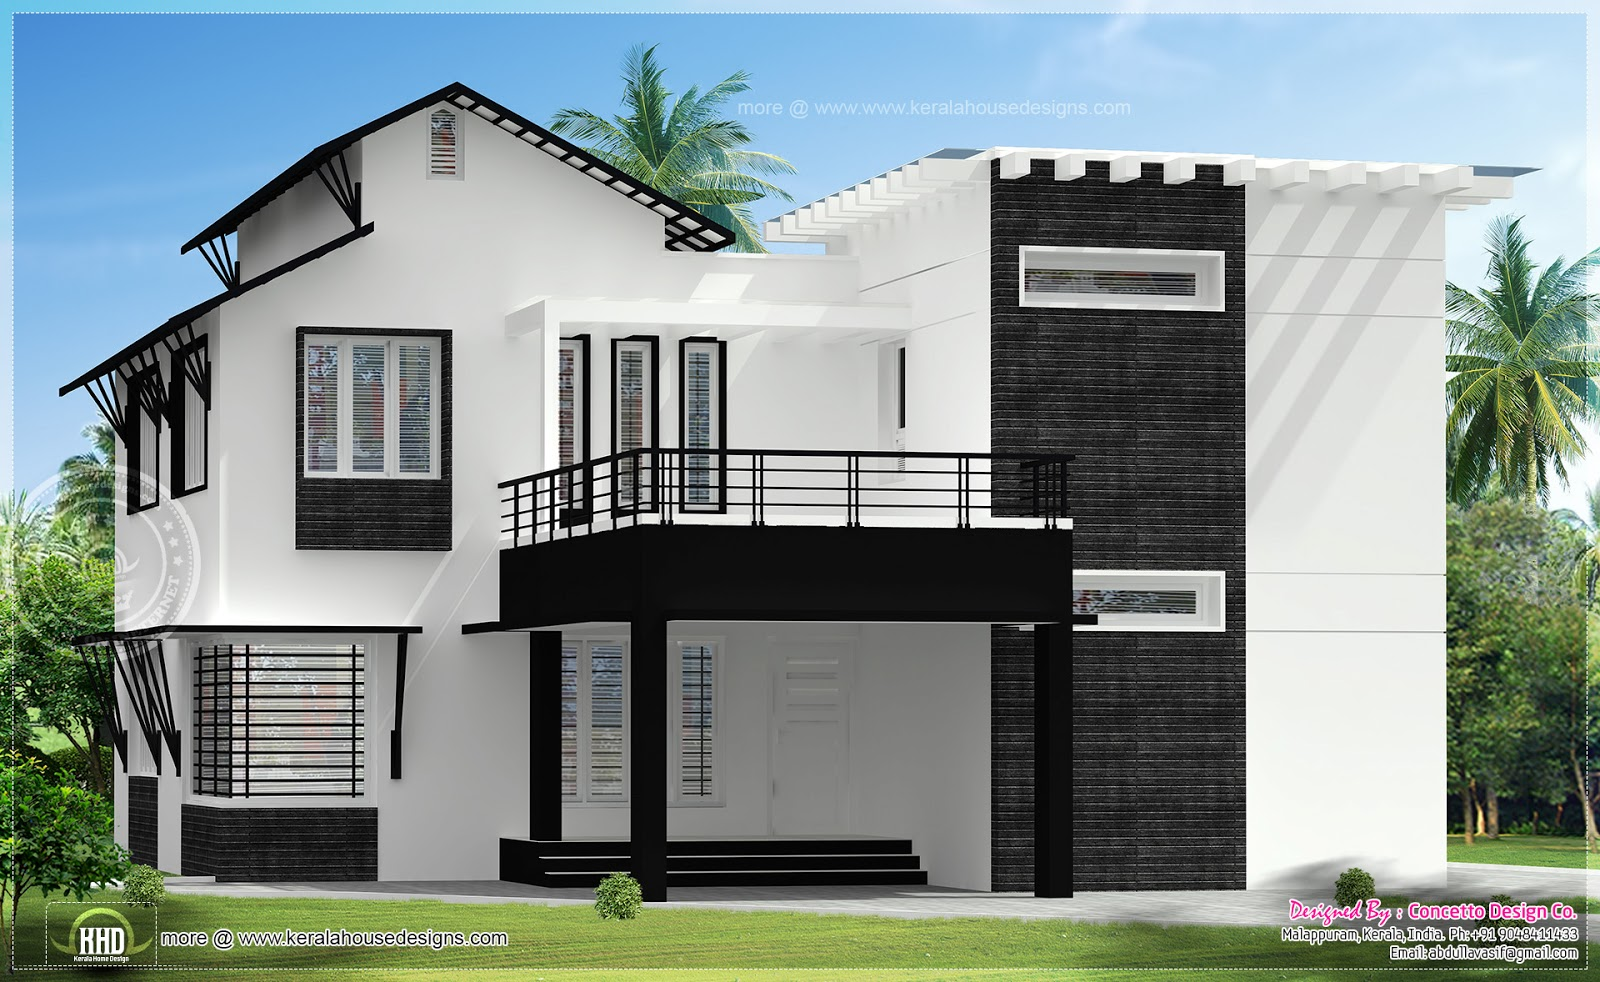 5 different house exteriors by concetto design kerala for Home designs and plans